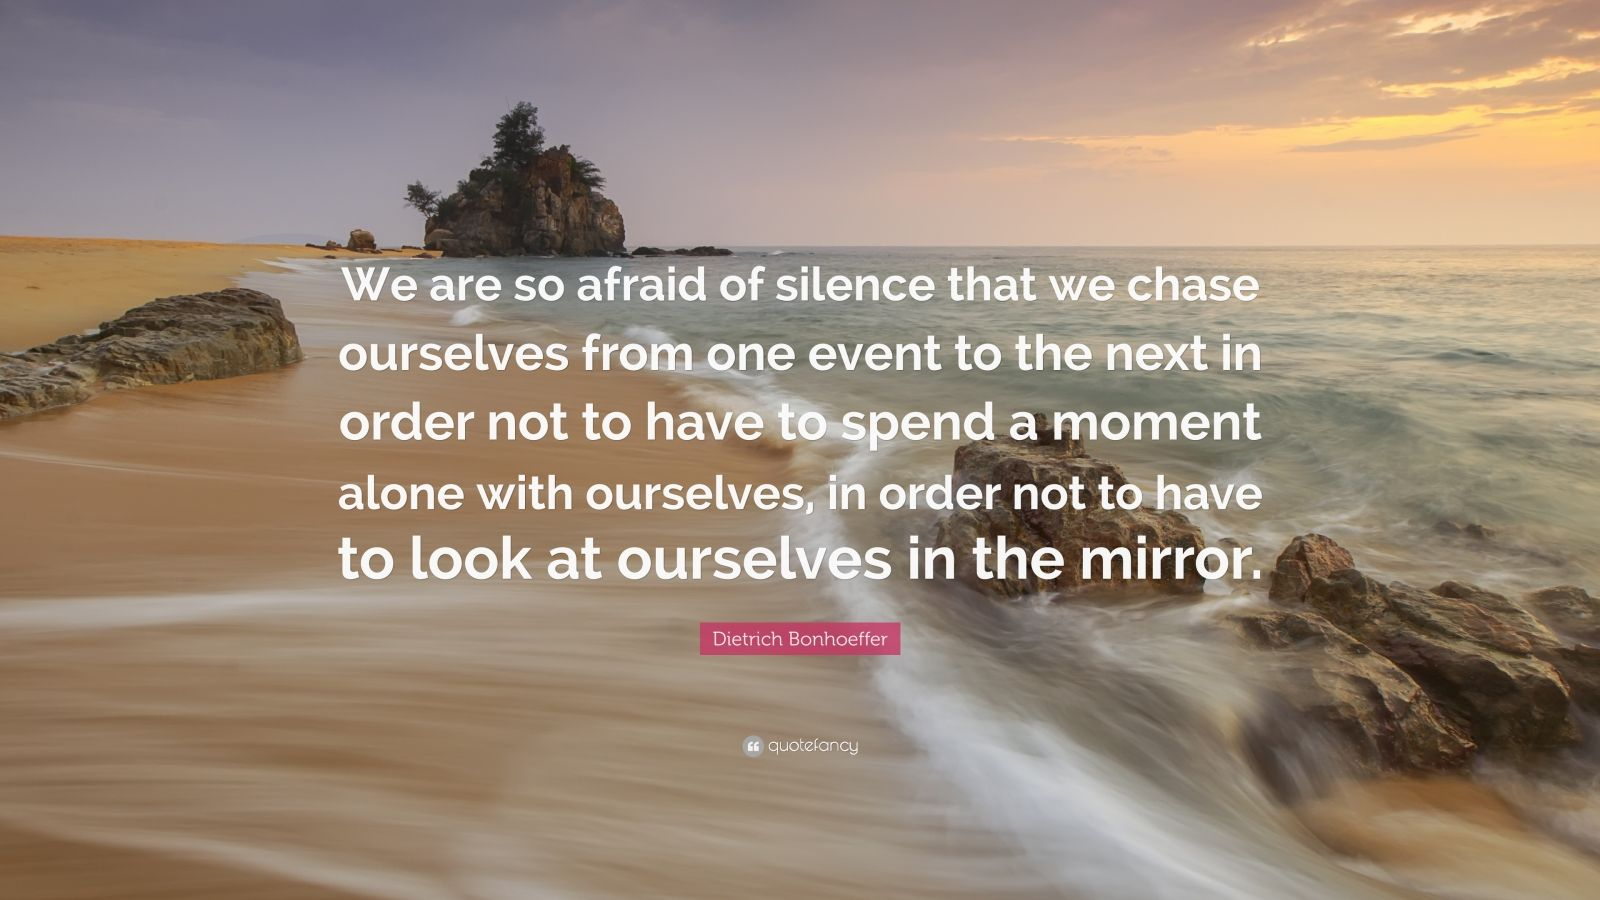 """Dietrich Bonhoeffer Quote: """"We are so afraid of silence that we chase ourselves from one event to the next in order not to have to spend a moment alone with ourselves, in order not to have to look at ourselves in the mirror."""""""